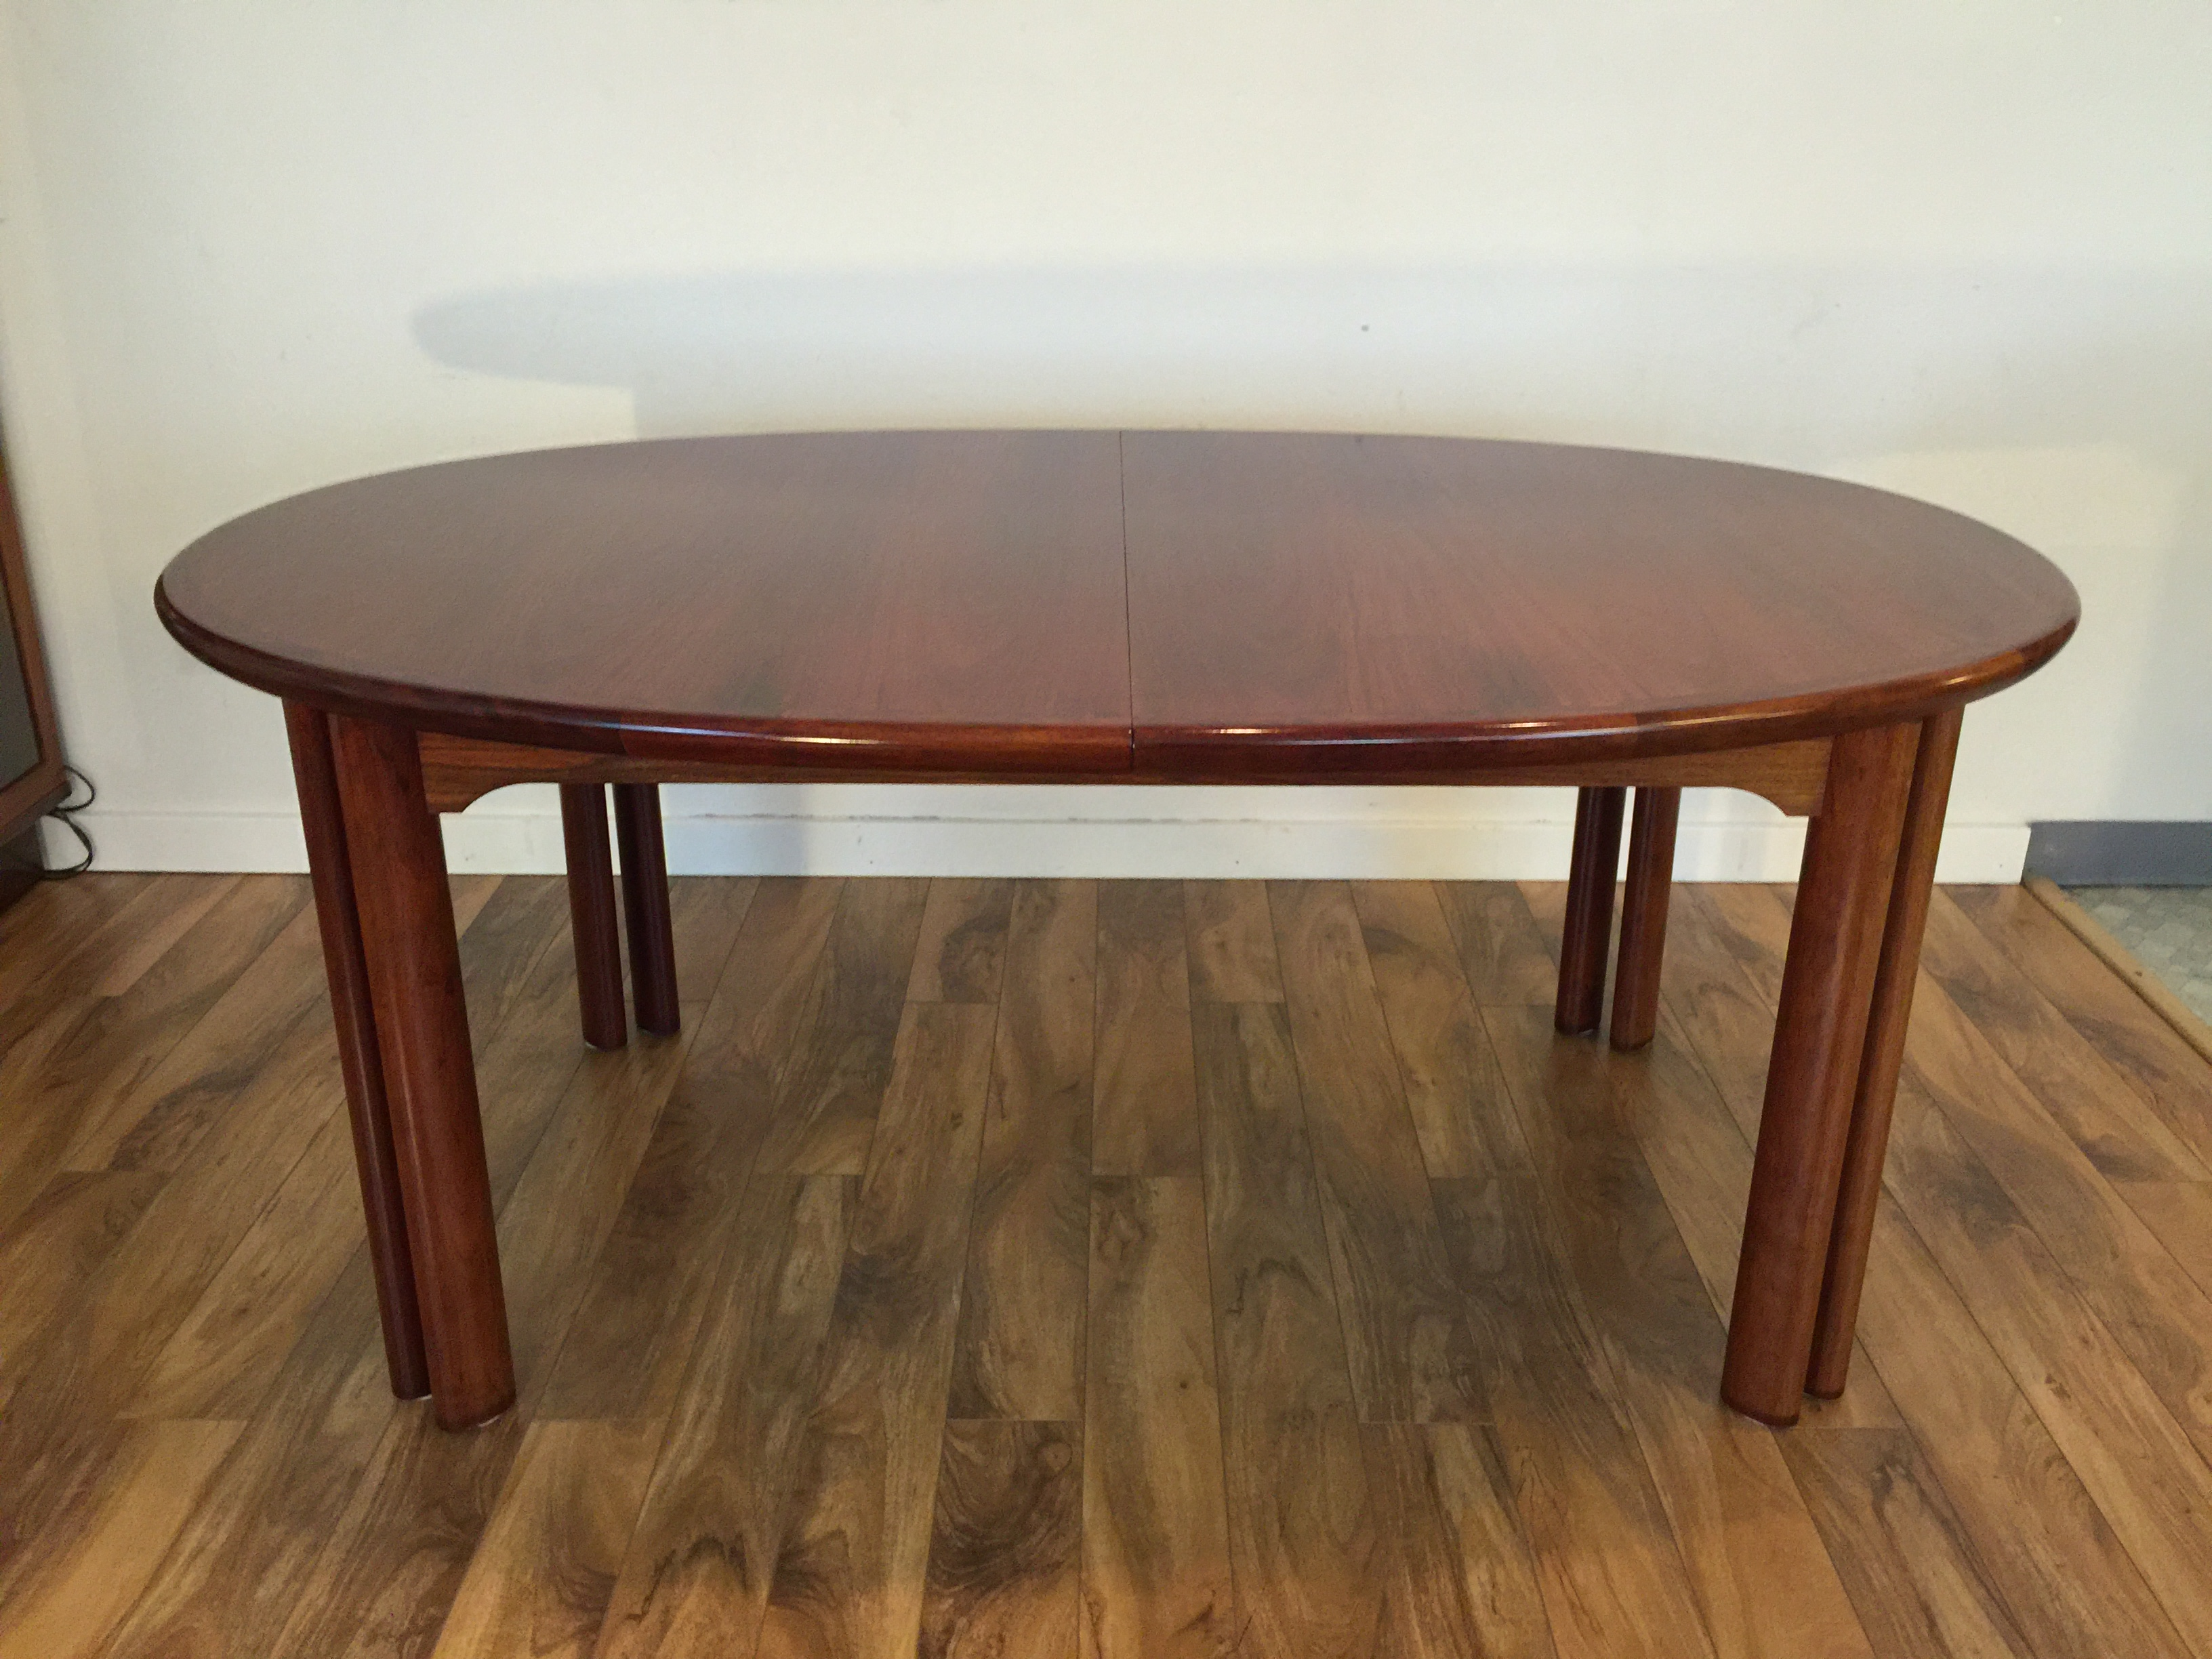 Danish Rosewood Dining Set Table amp 8 Chairs Chairish : 8d4c4d47 59d3 4d71 9354 ee34a12ba819aspectfitampwidth640ampheight640 from www.chairish.com size 640 x 640 jpeg 34kB